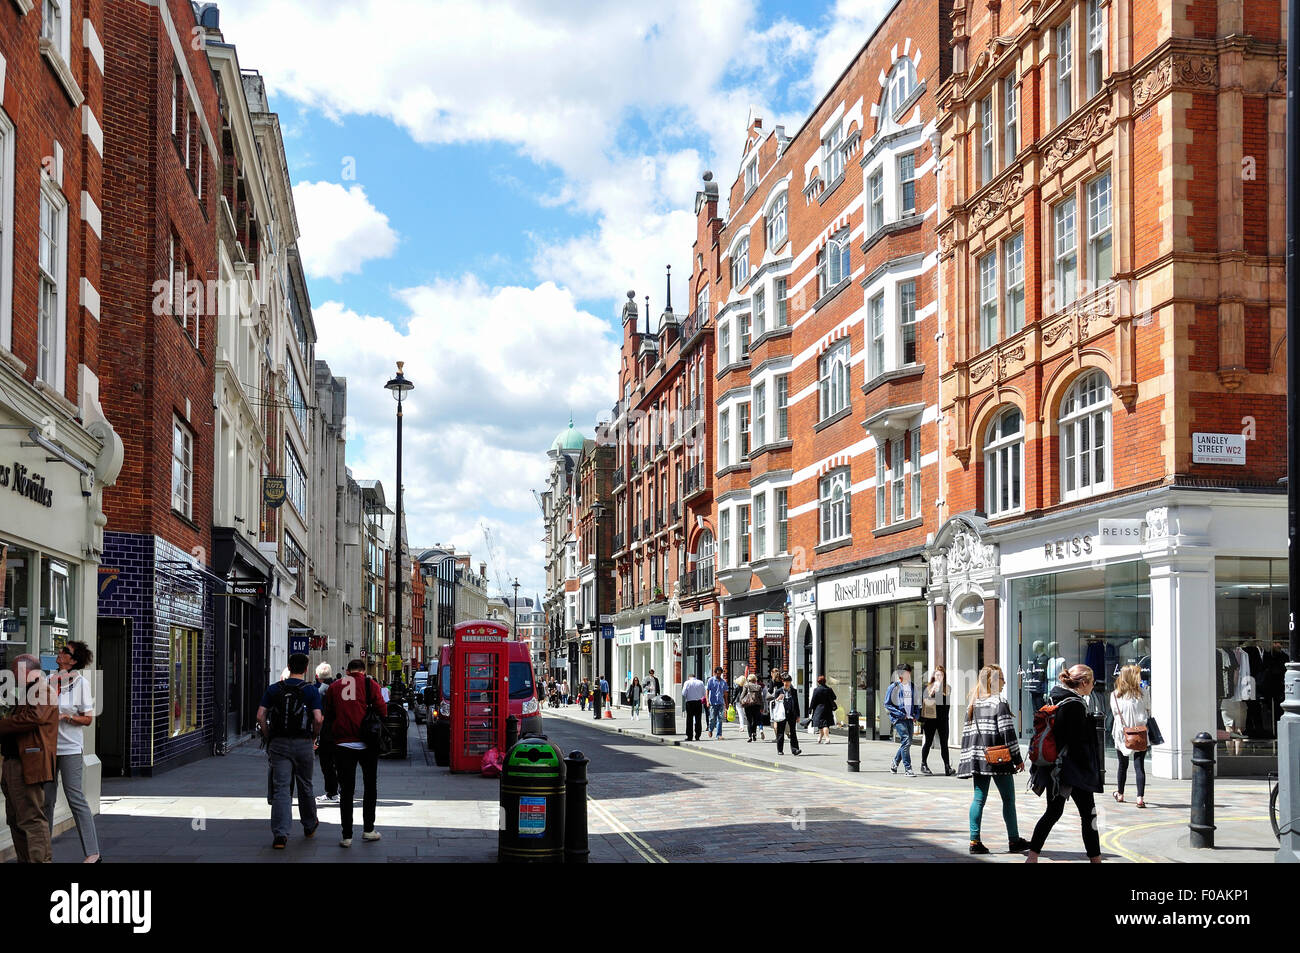 Long Acre, Covent Garden, City of Westminster, London, England, United Kingdom Photo Stock